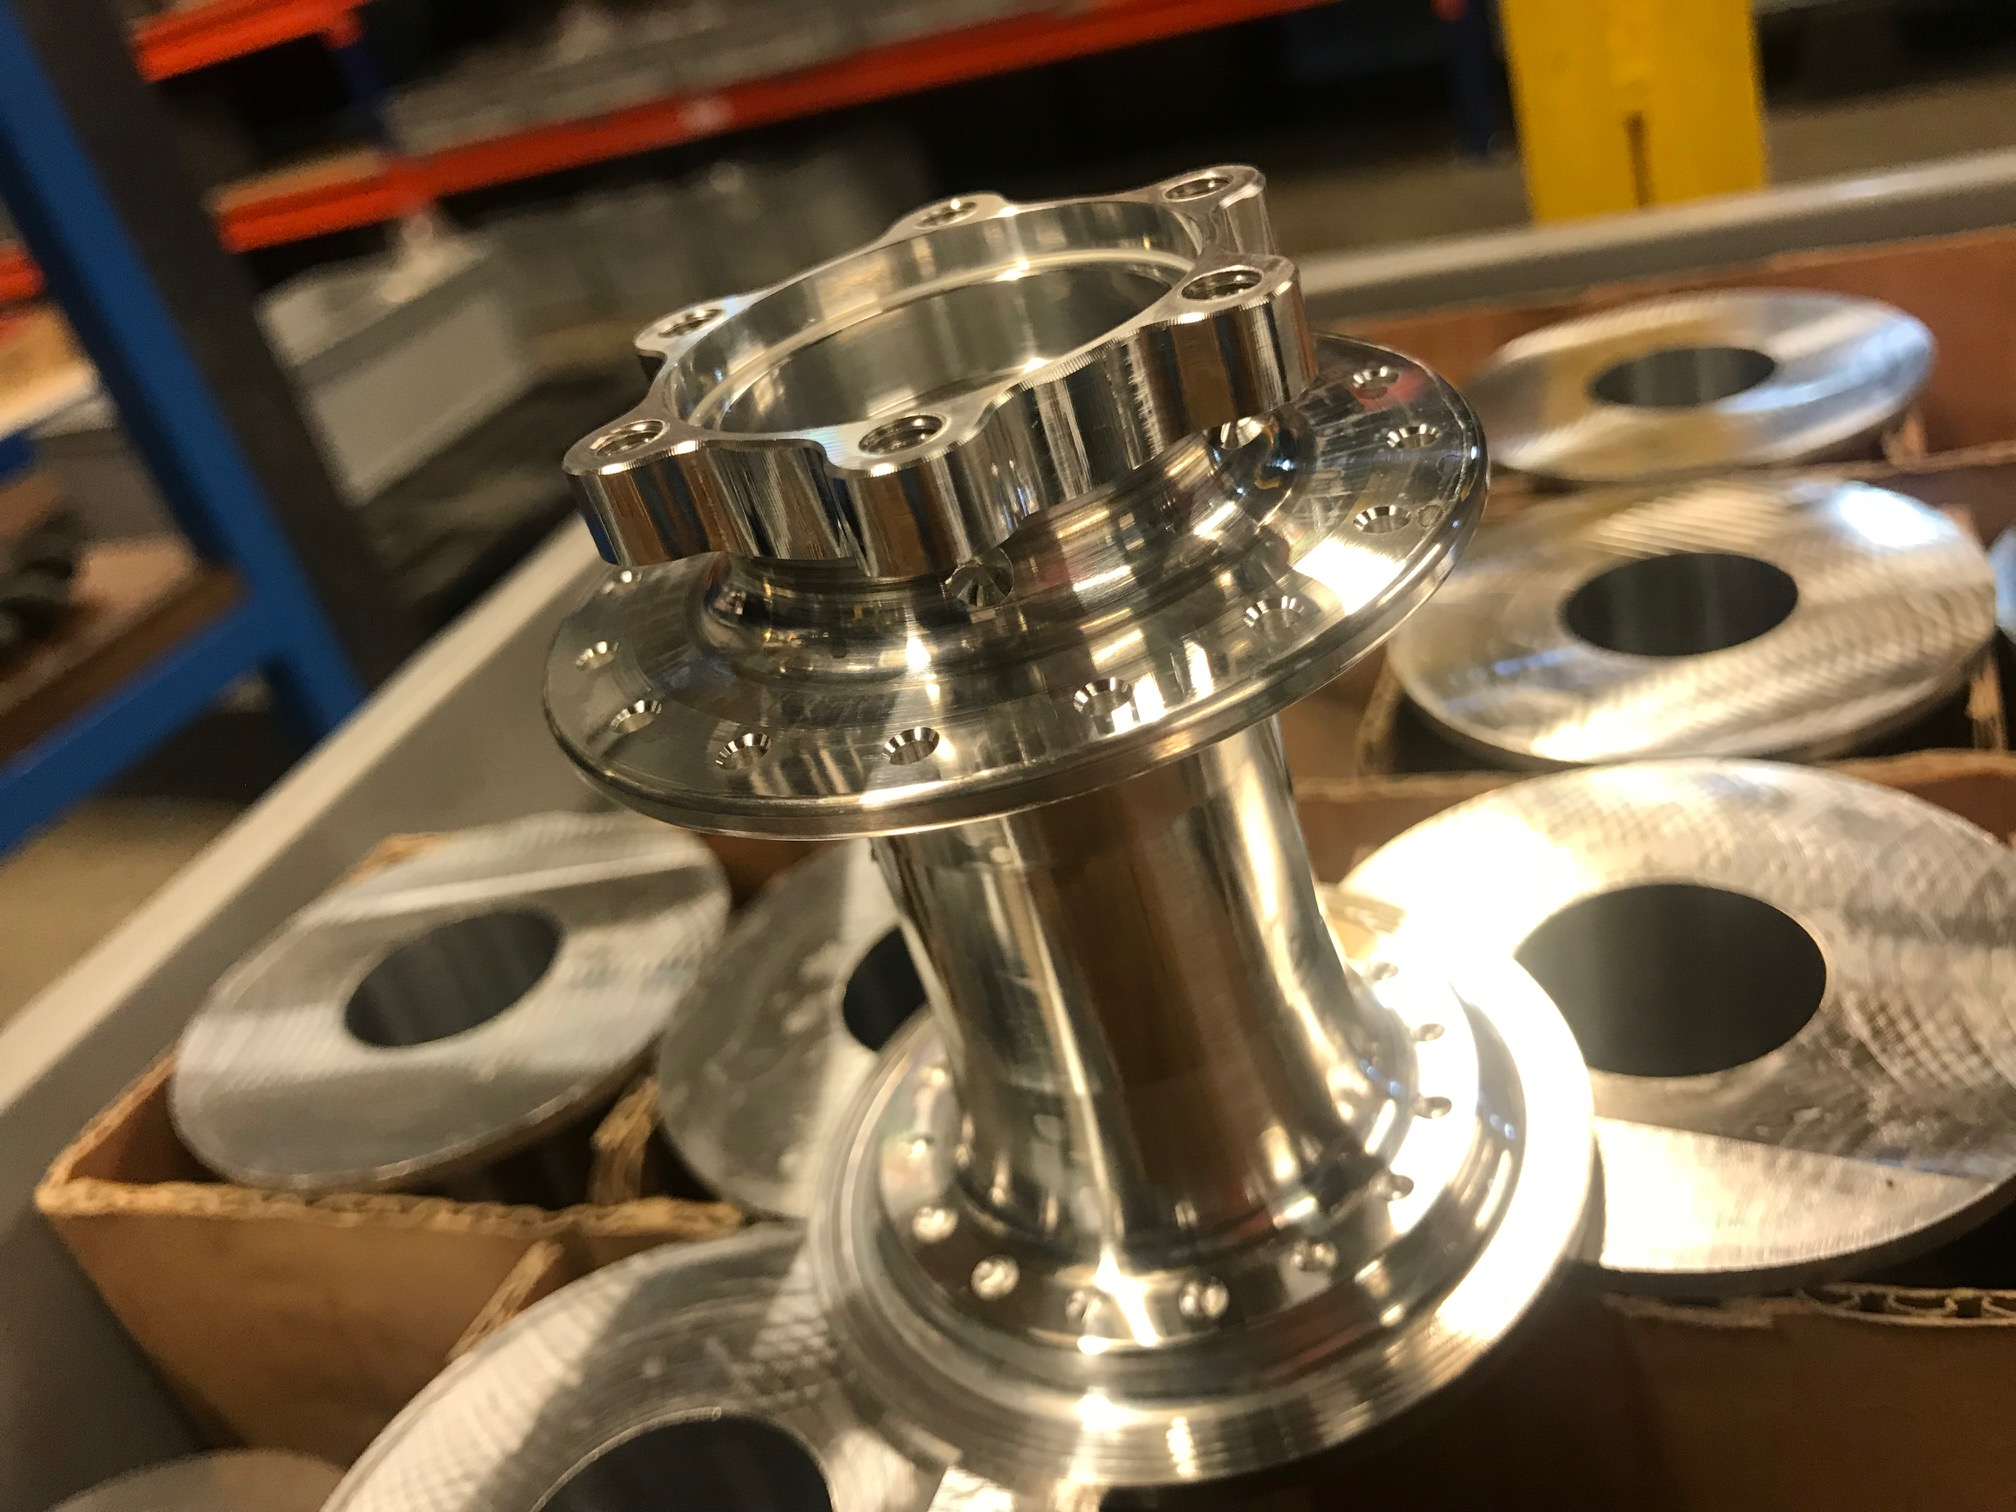 Hubs + Hubshells - Manufactured to customer's designs from custom forged 7075 T651 material. 24/7 production with a robot loading cell for maximum efficiency.MOQ - 100 p/size/modelPrice: Asia competitive - complex straight pull designs most competitive.